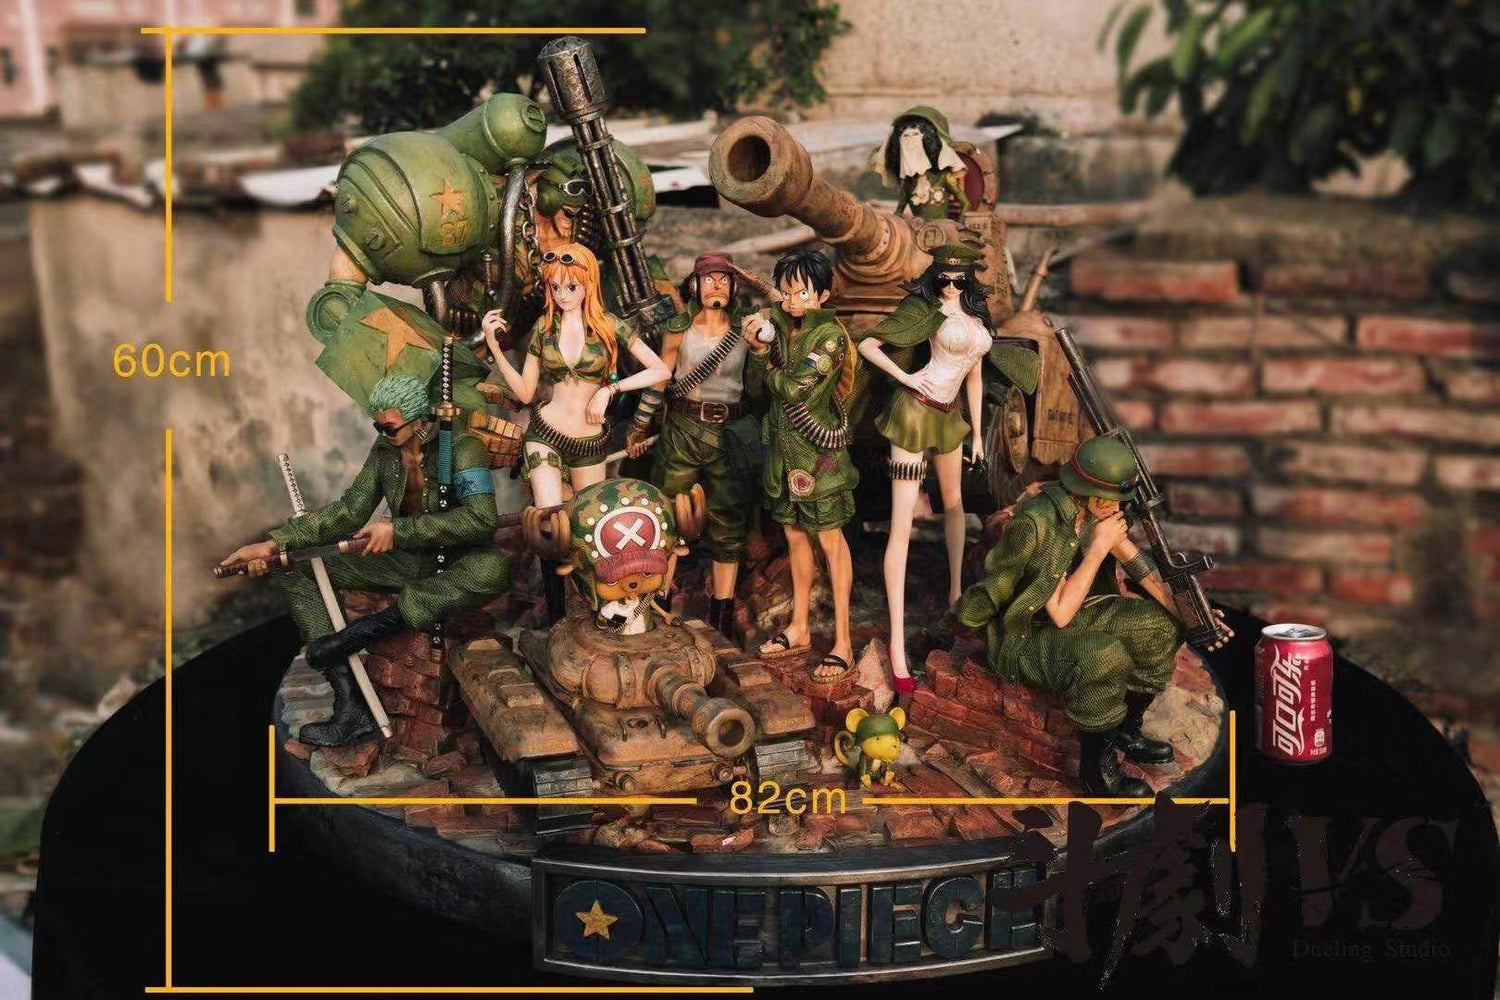 Image of [Pre-Order]One Piece Dueling Studio Military Straw Hat Set Resin Statue